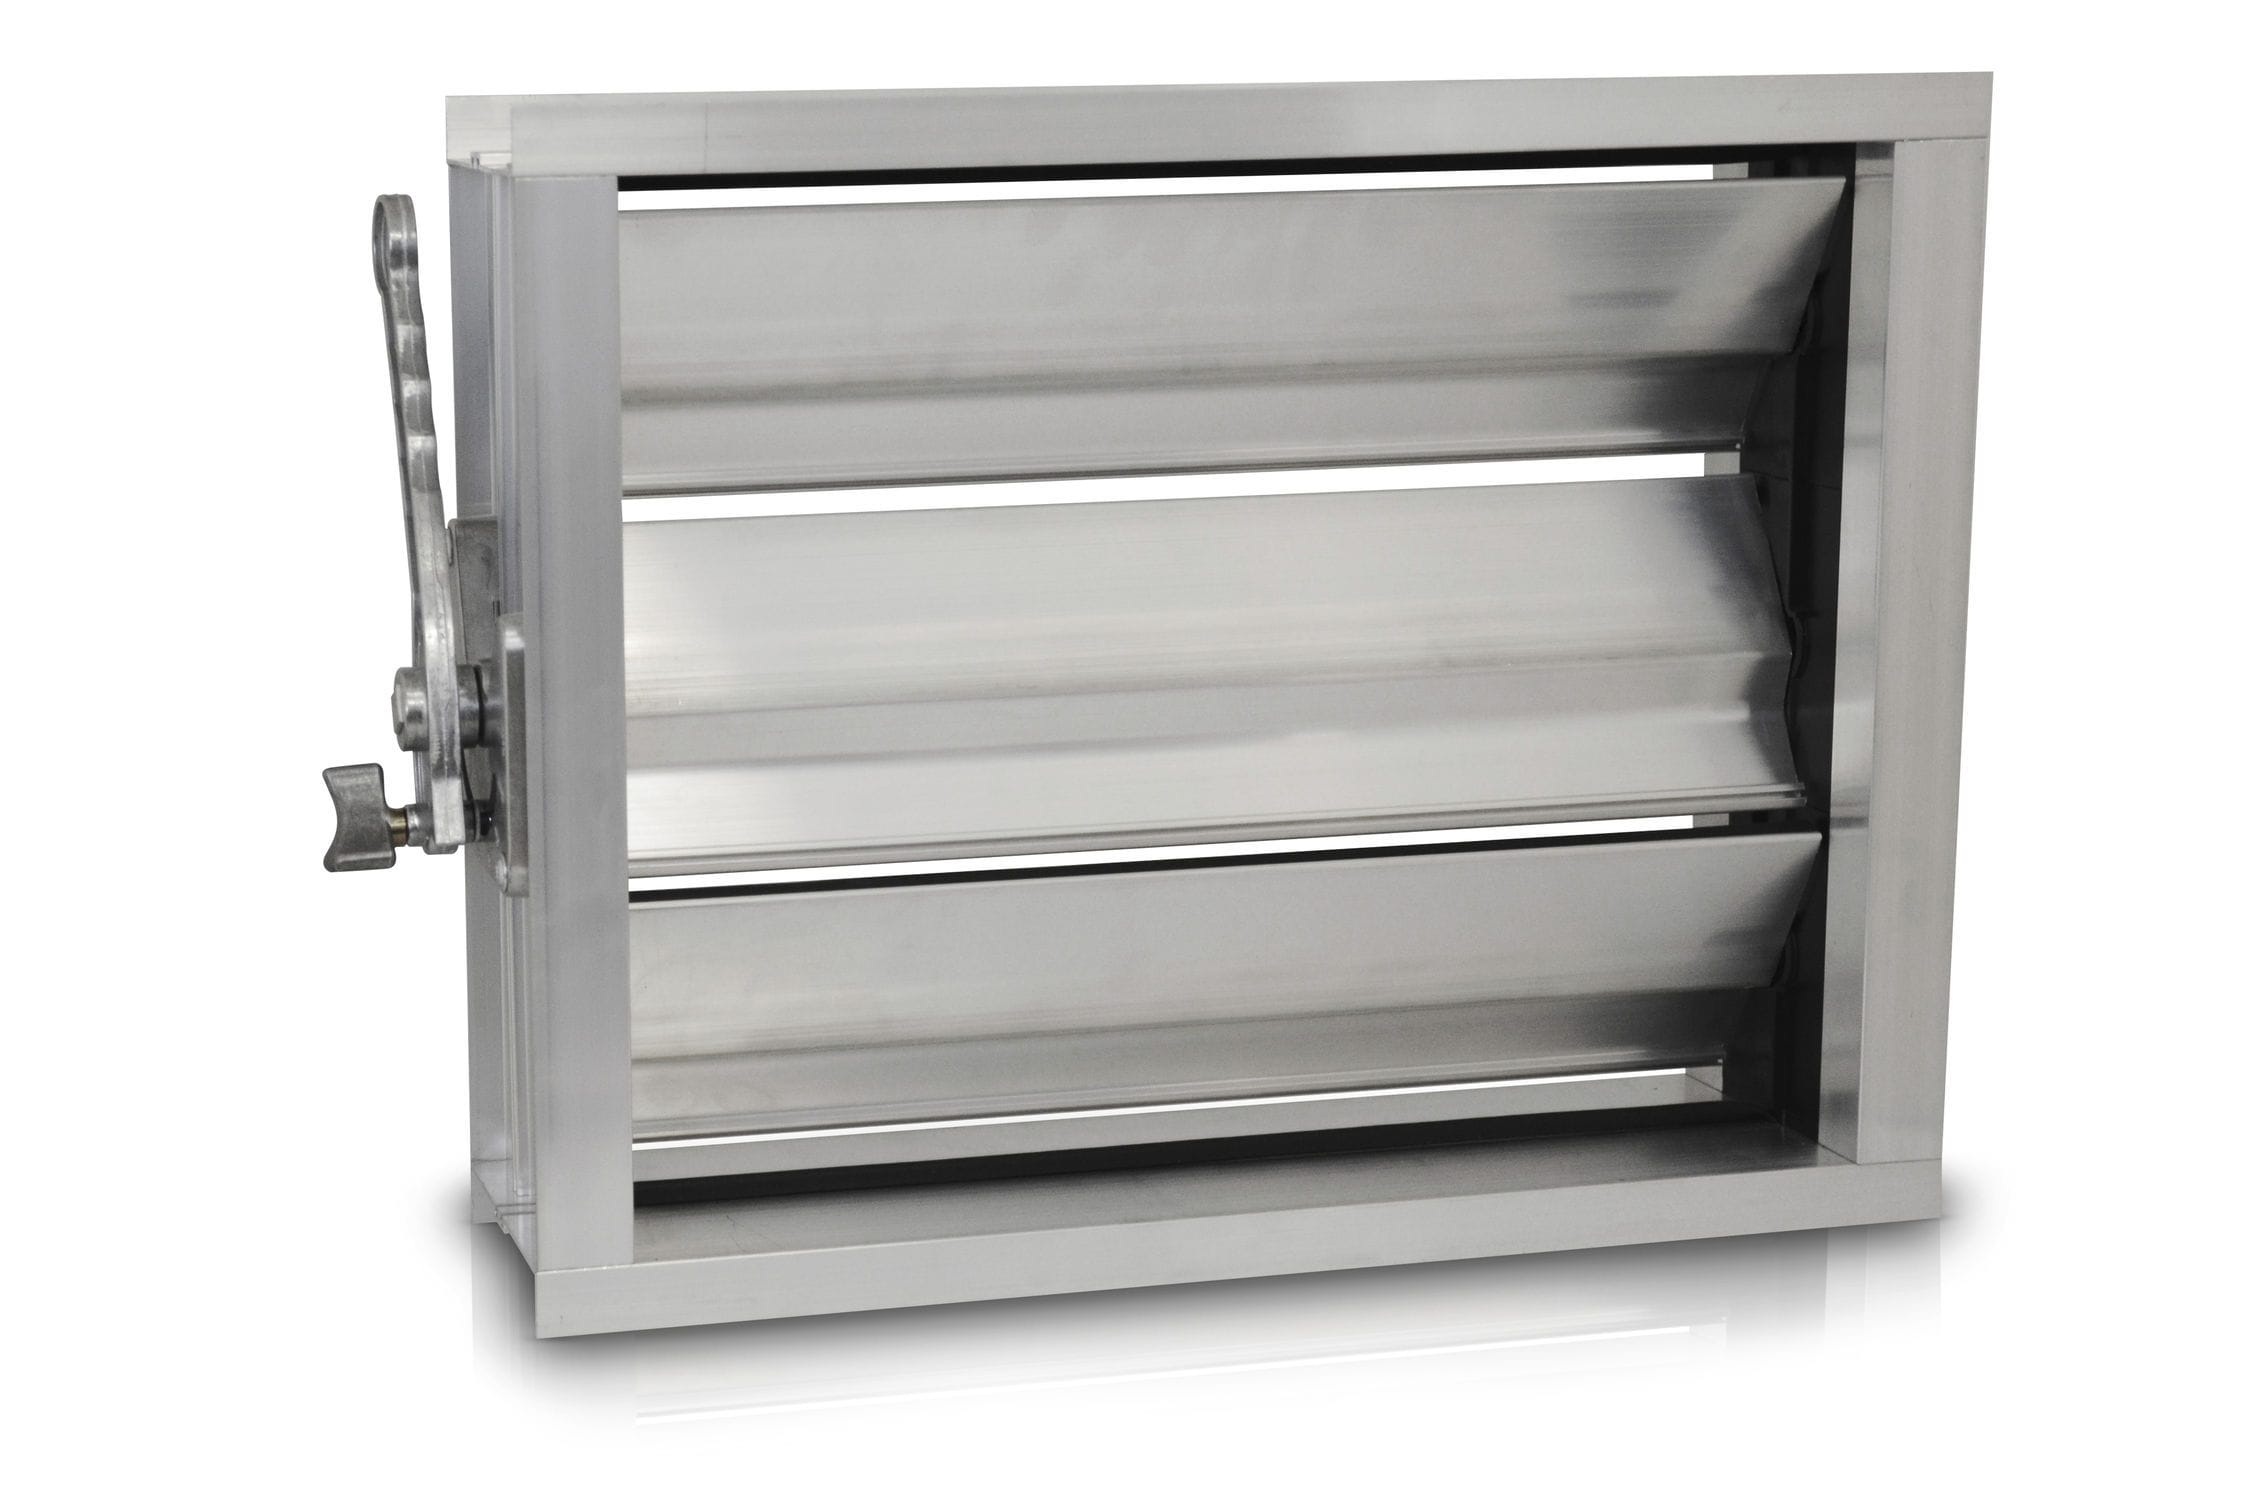 air conditioning damper. vibration damper / for pipework air conditioning aluminum dsqw-a alnor ventilation systems